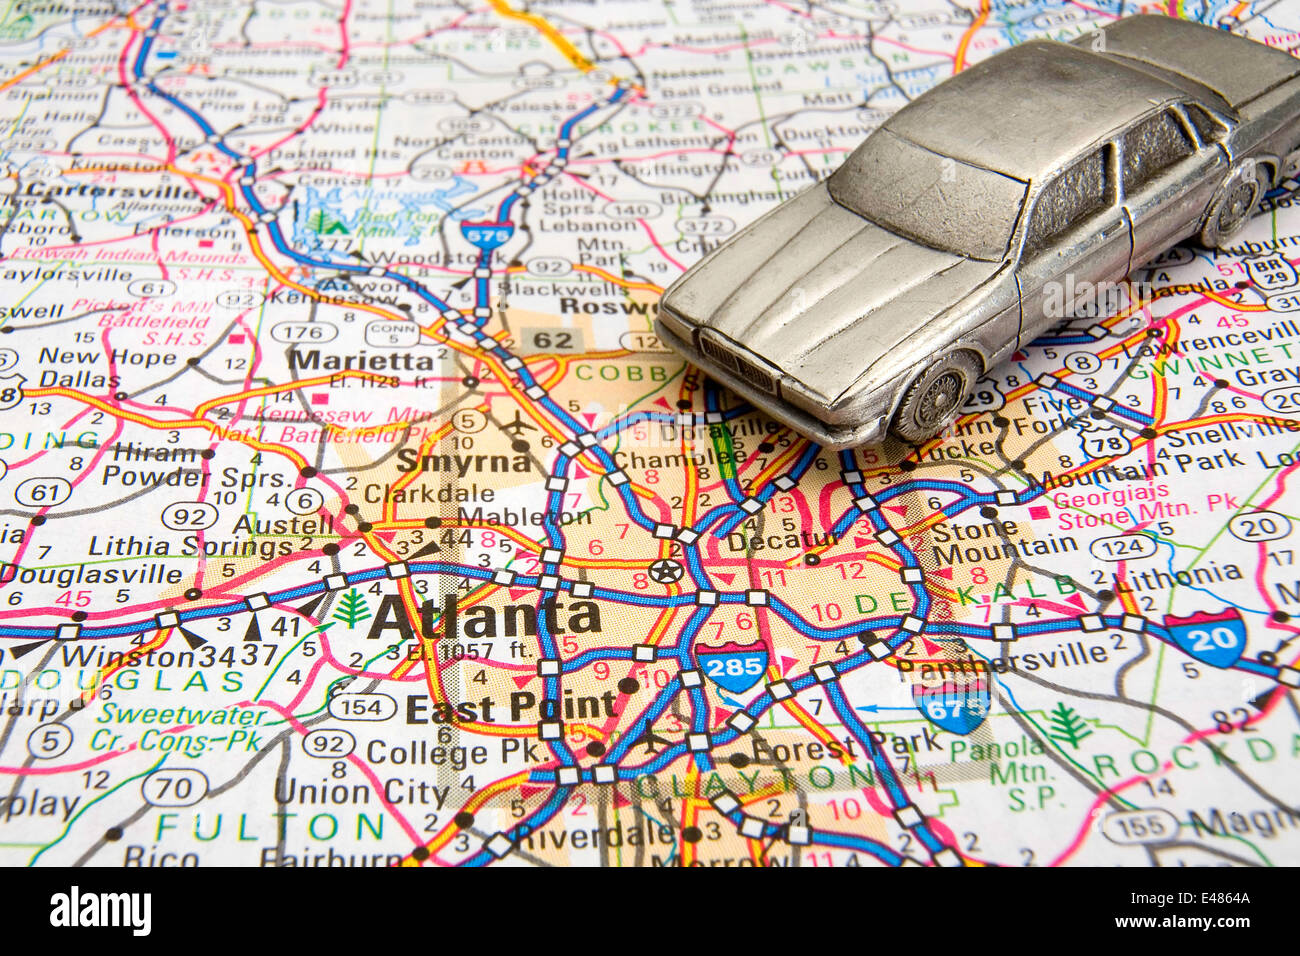 Road Map Of Atlanta Georgia.Model Sedan On A Road Map Of Atlanta Georgia Stock Photo 71480538